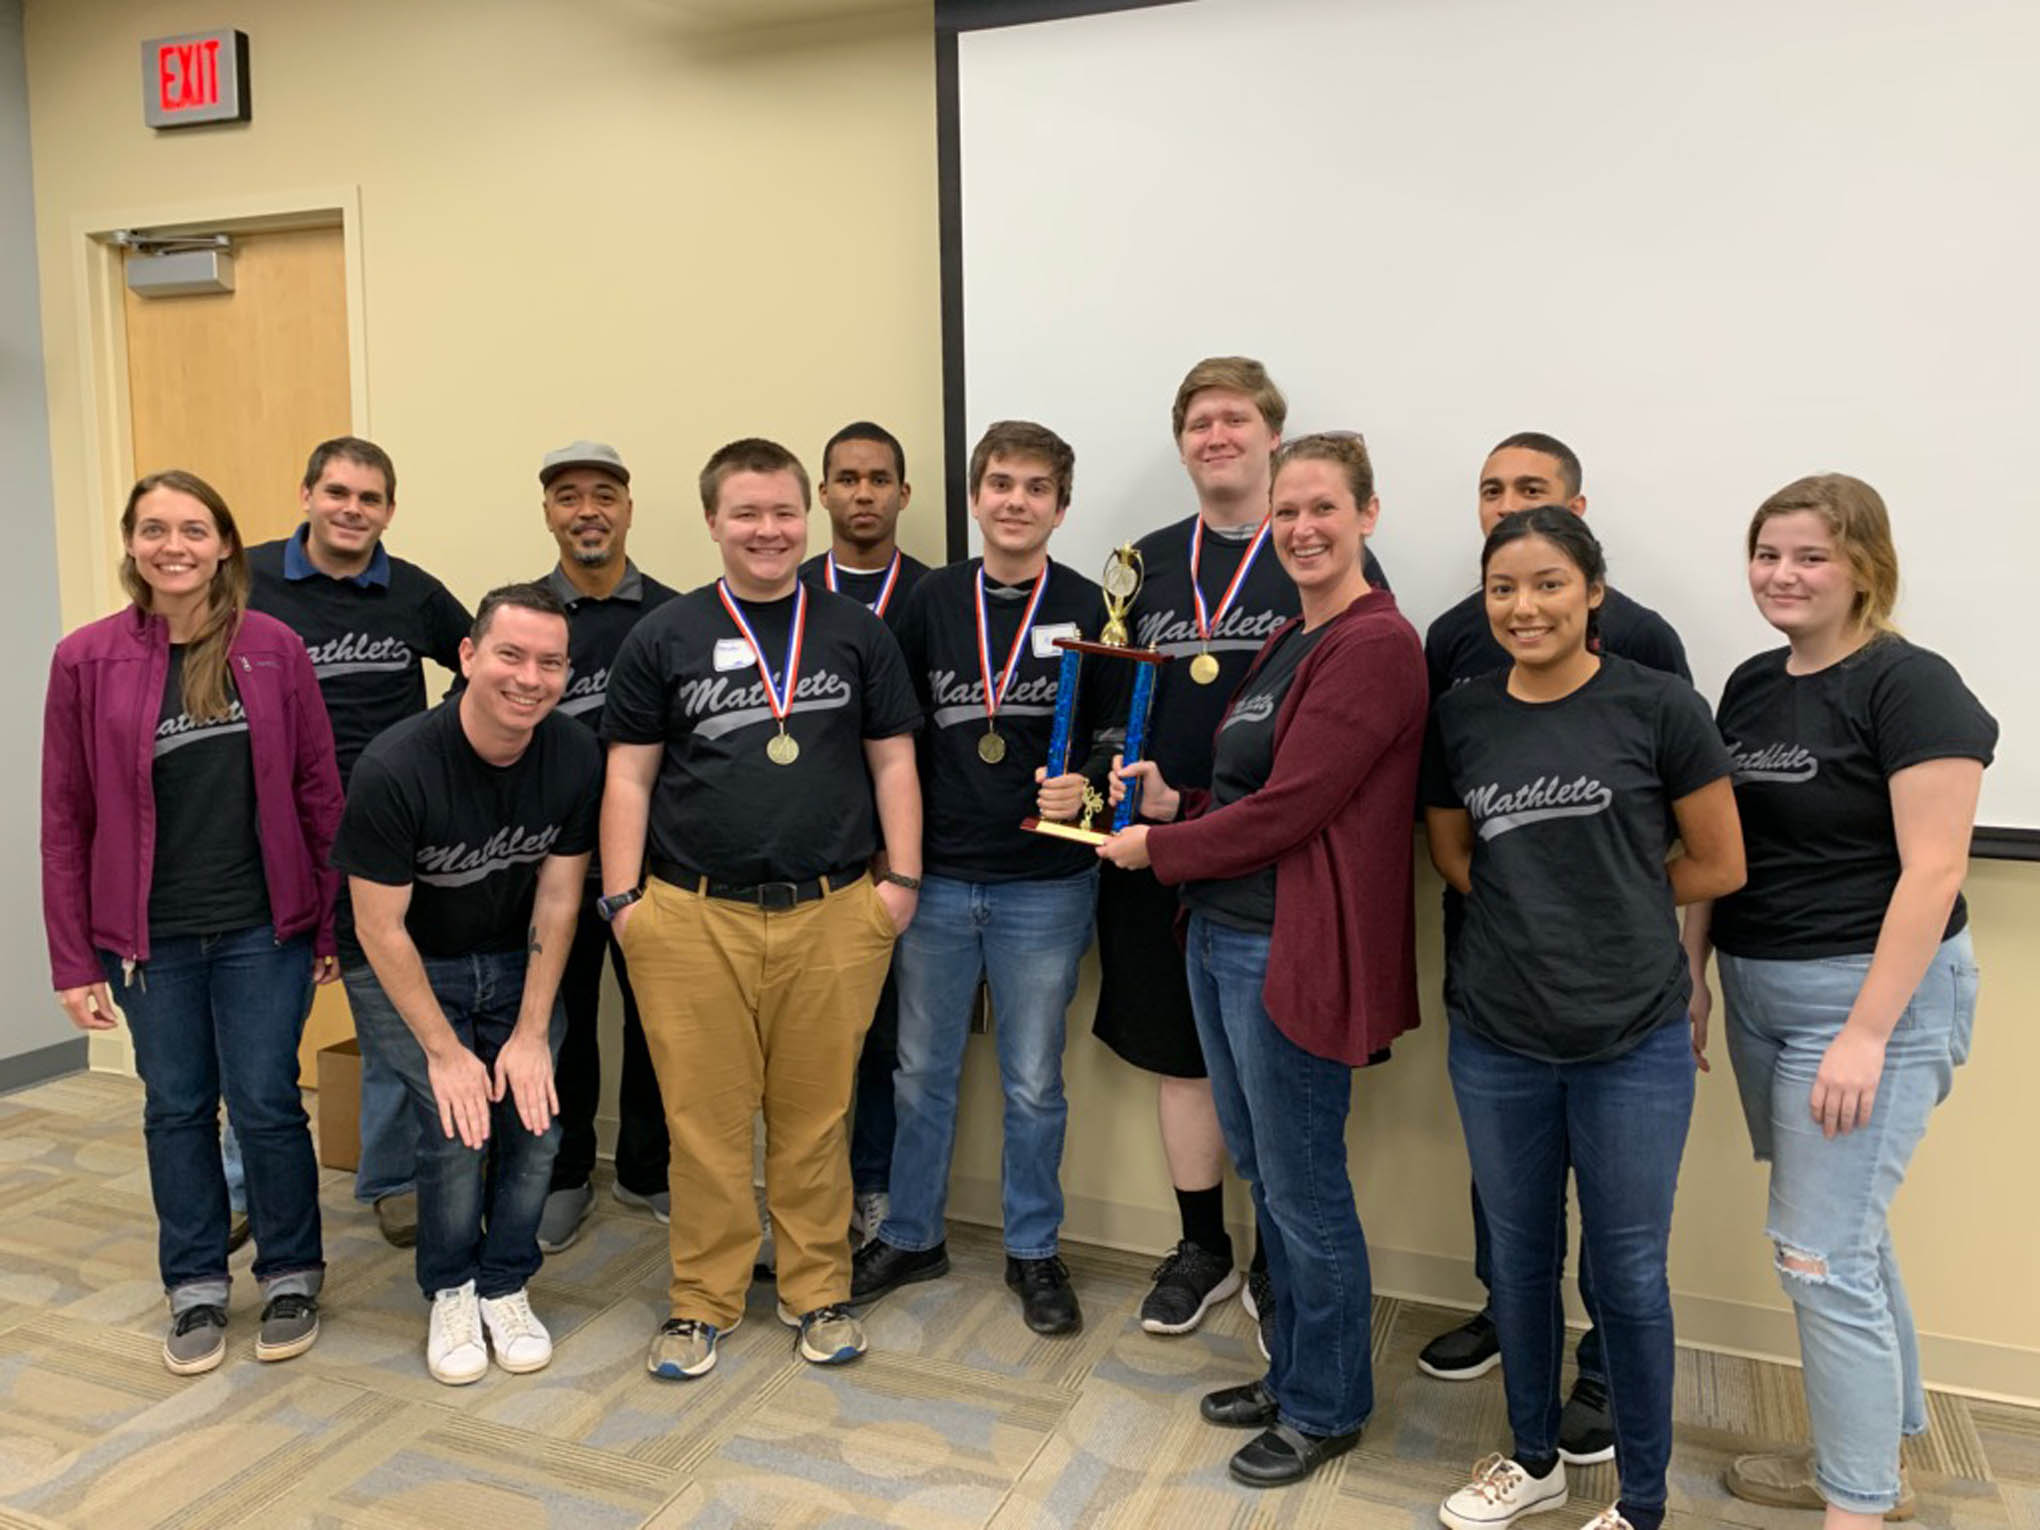 Read the full story, CCCC Math Club wins competition